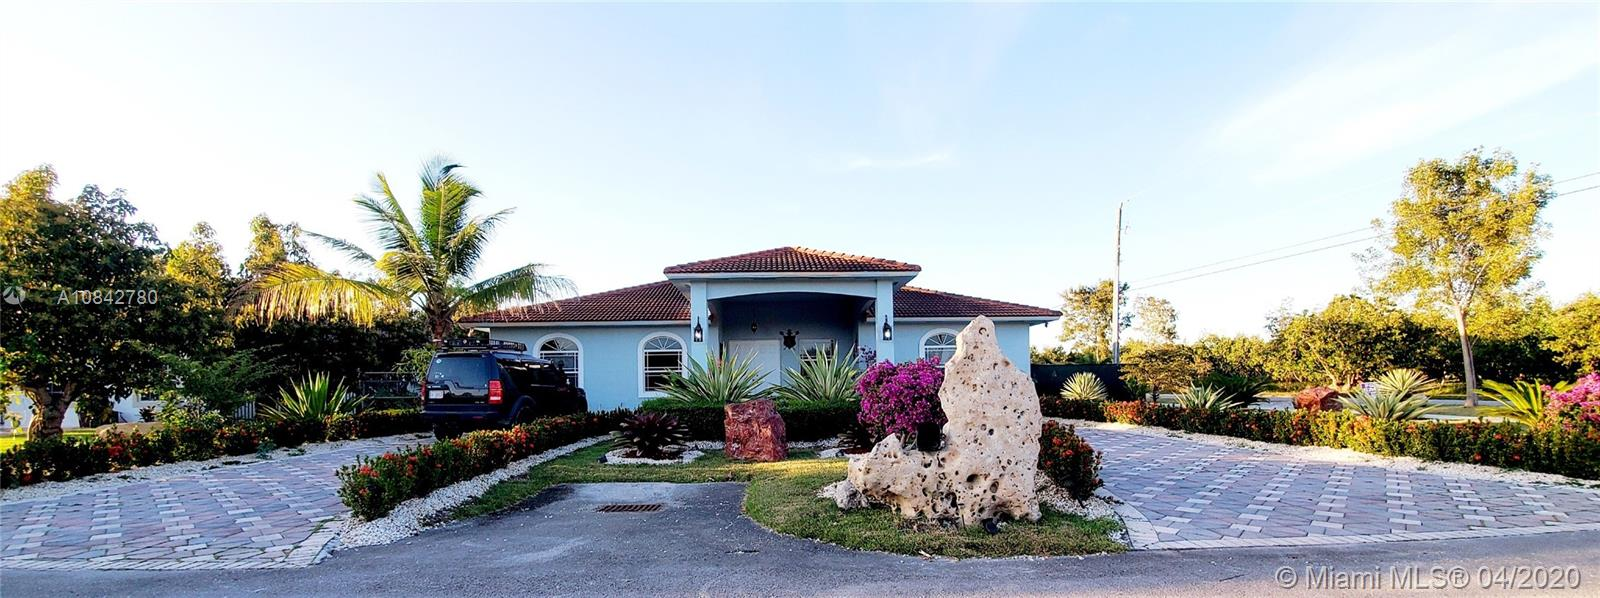 16205 SW 275th St  For Sale A10842780, FL